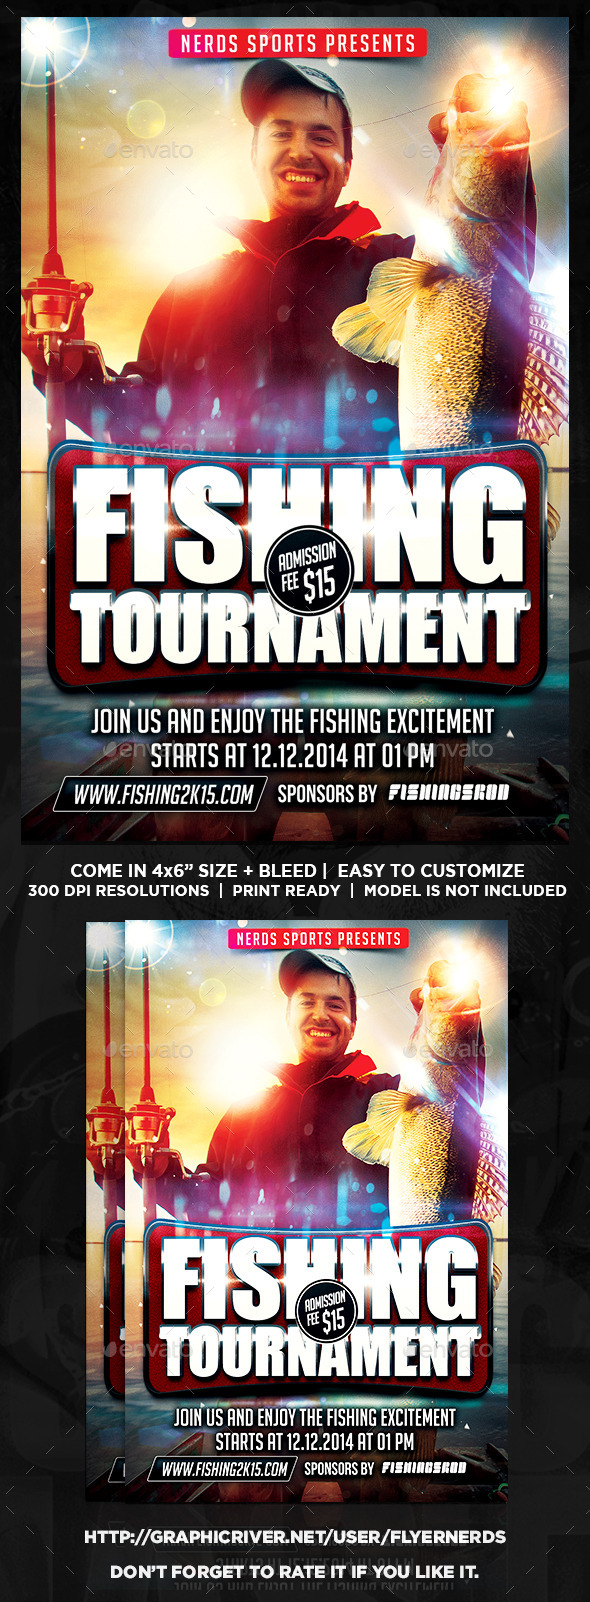 GraphicRiver Fishing 2K15 Tournament Sports Flyer 9947786